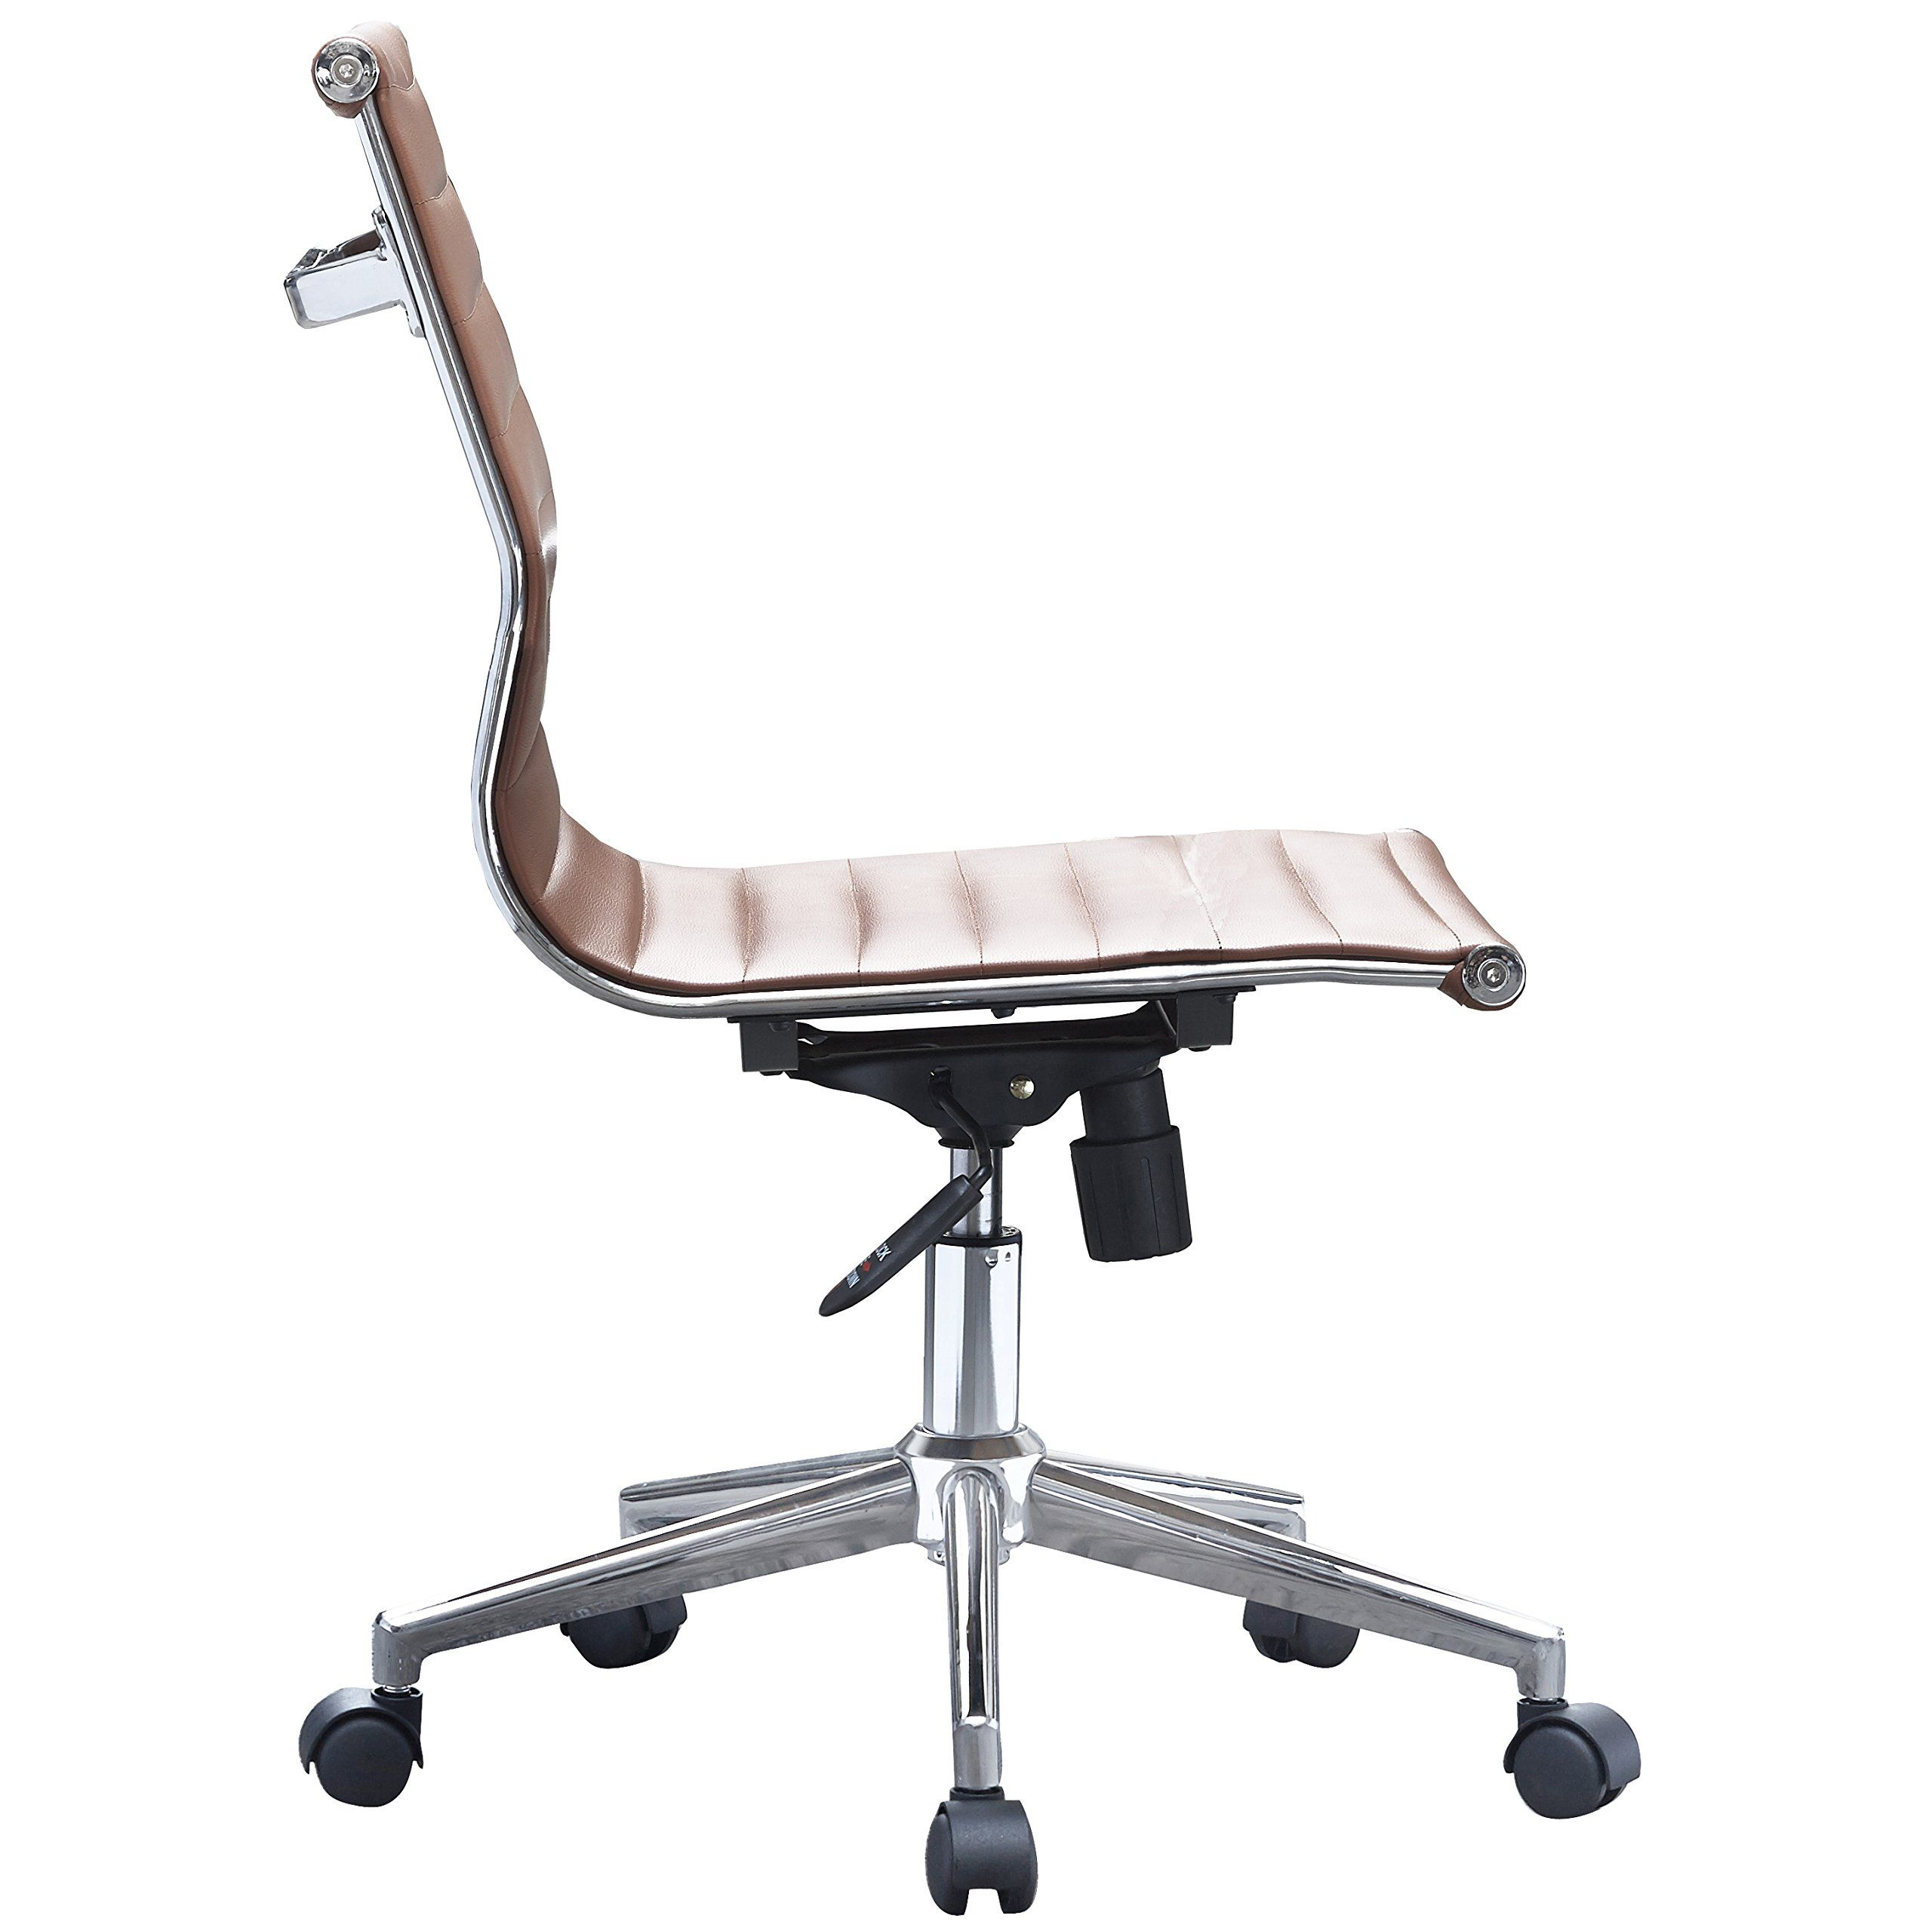 brown office chair without arms sling hanging swing 2xhome mid century modern executive back pu leather arm rest tilt adjustable height with wheels support task work chrome armless